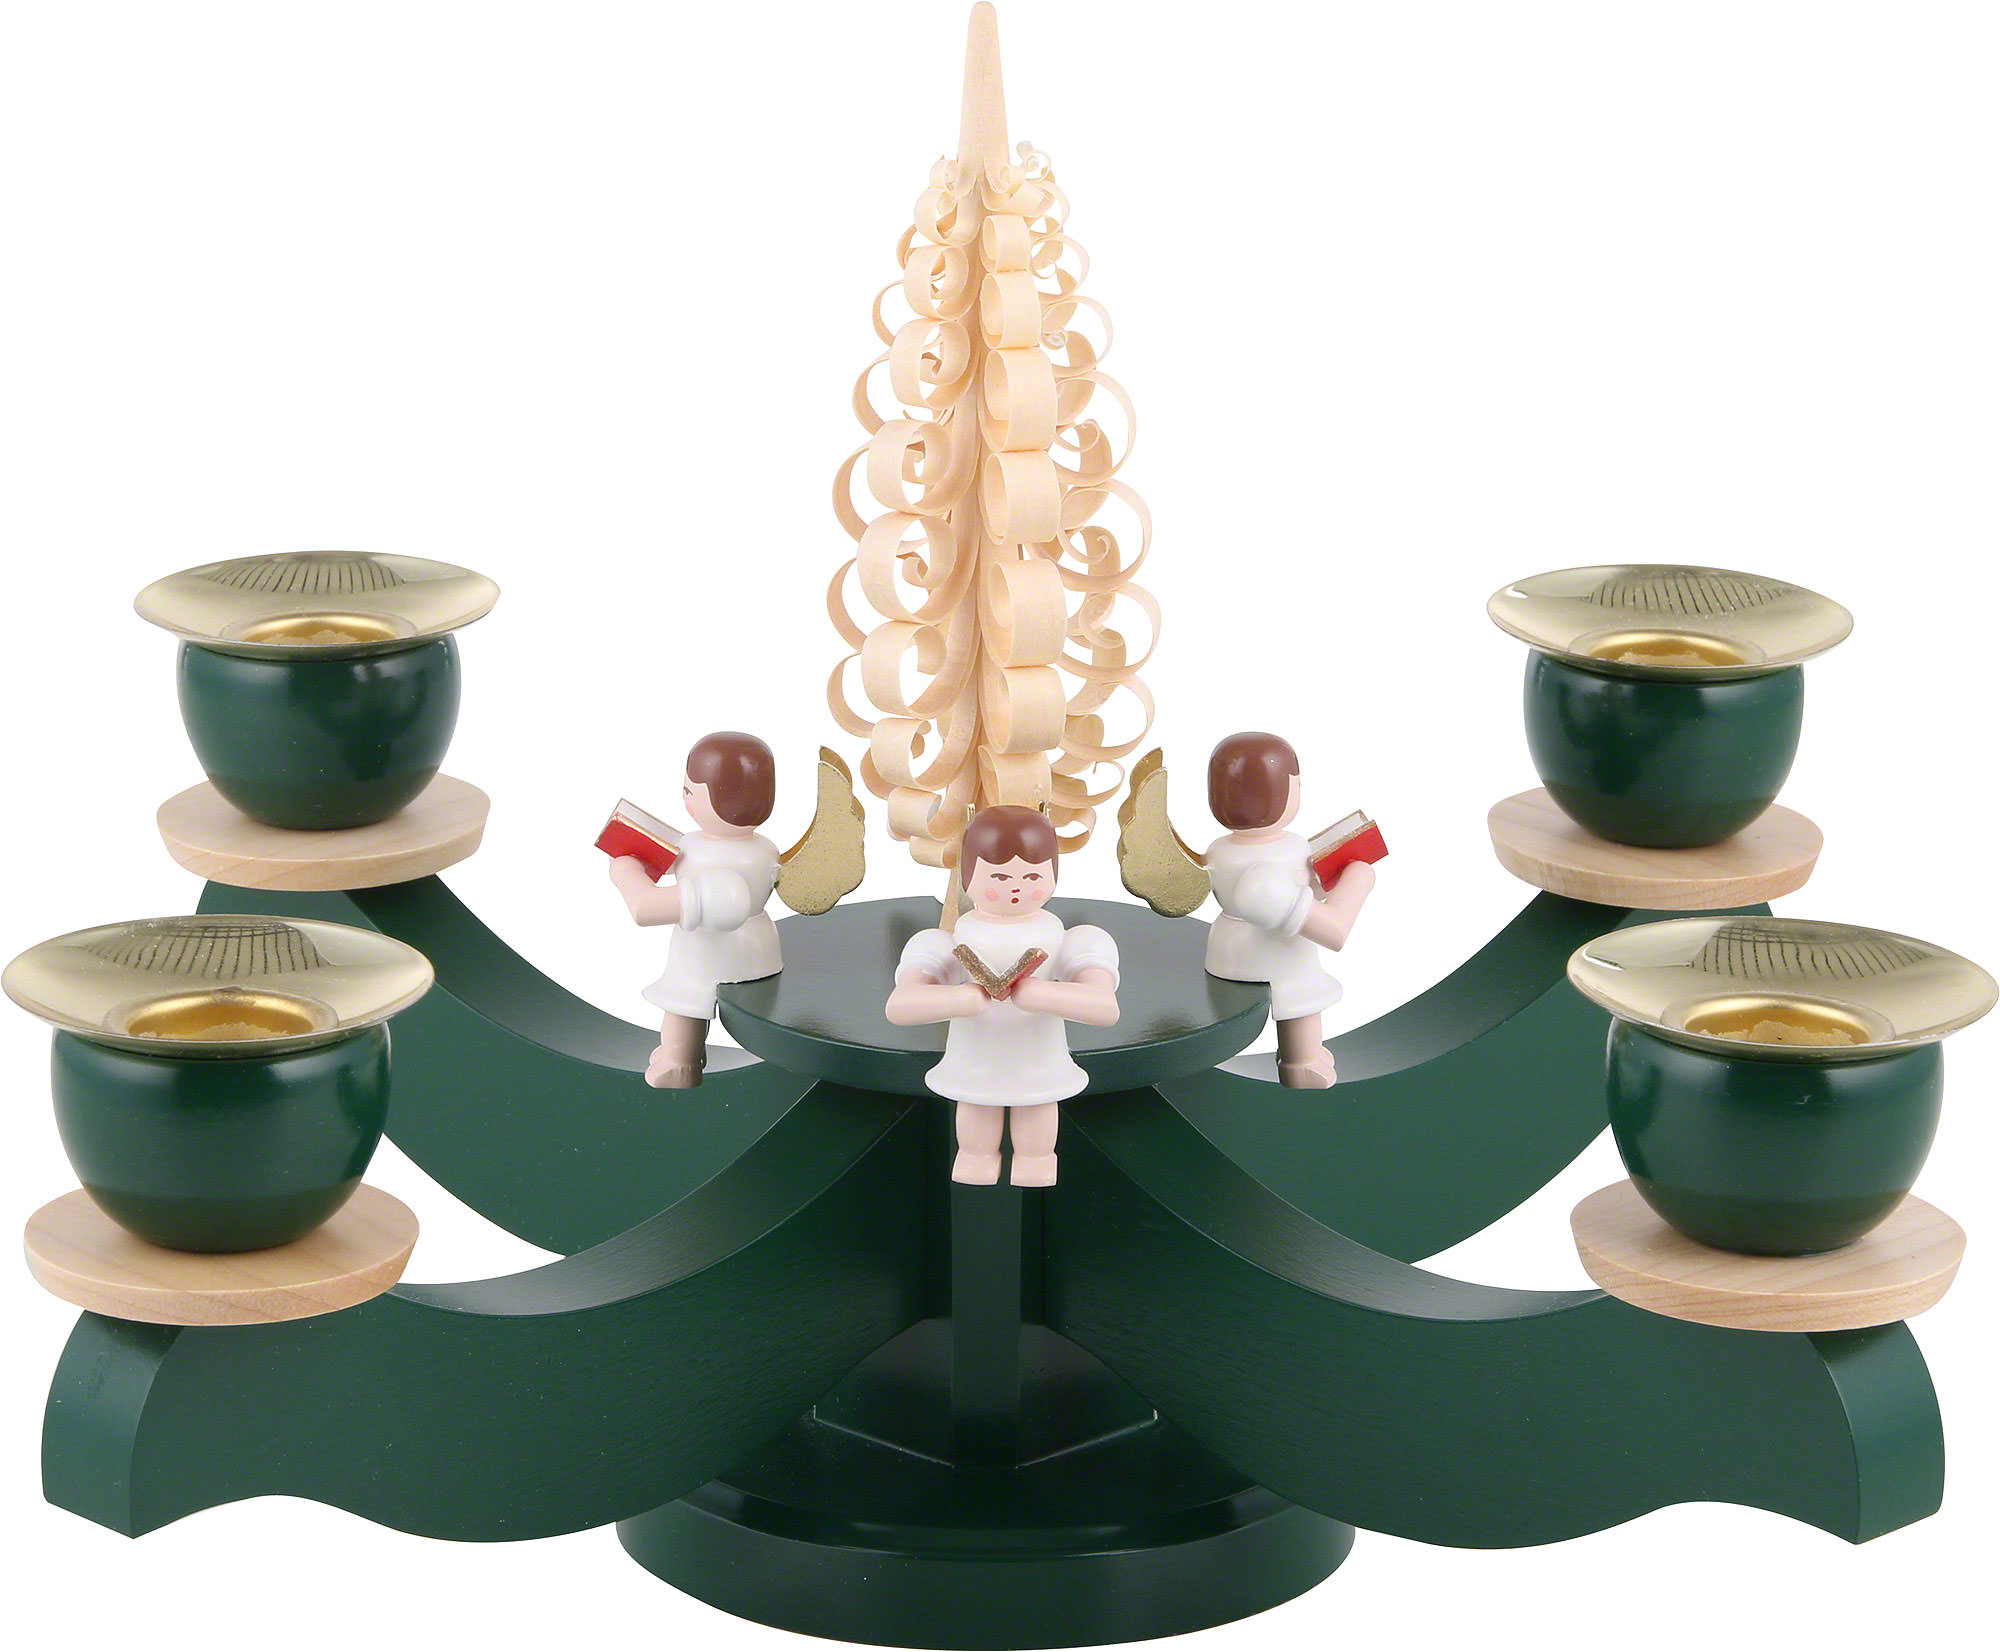 Candle Holder Advent Four Sitting Angels With Wood Chip Tree 22 19 Cm 8 7 7 5in By Albin Preissler